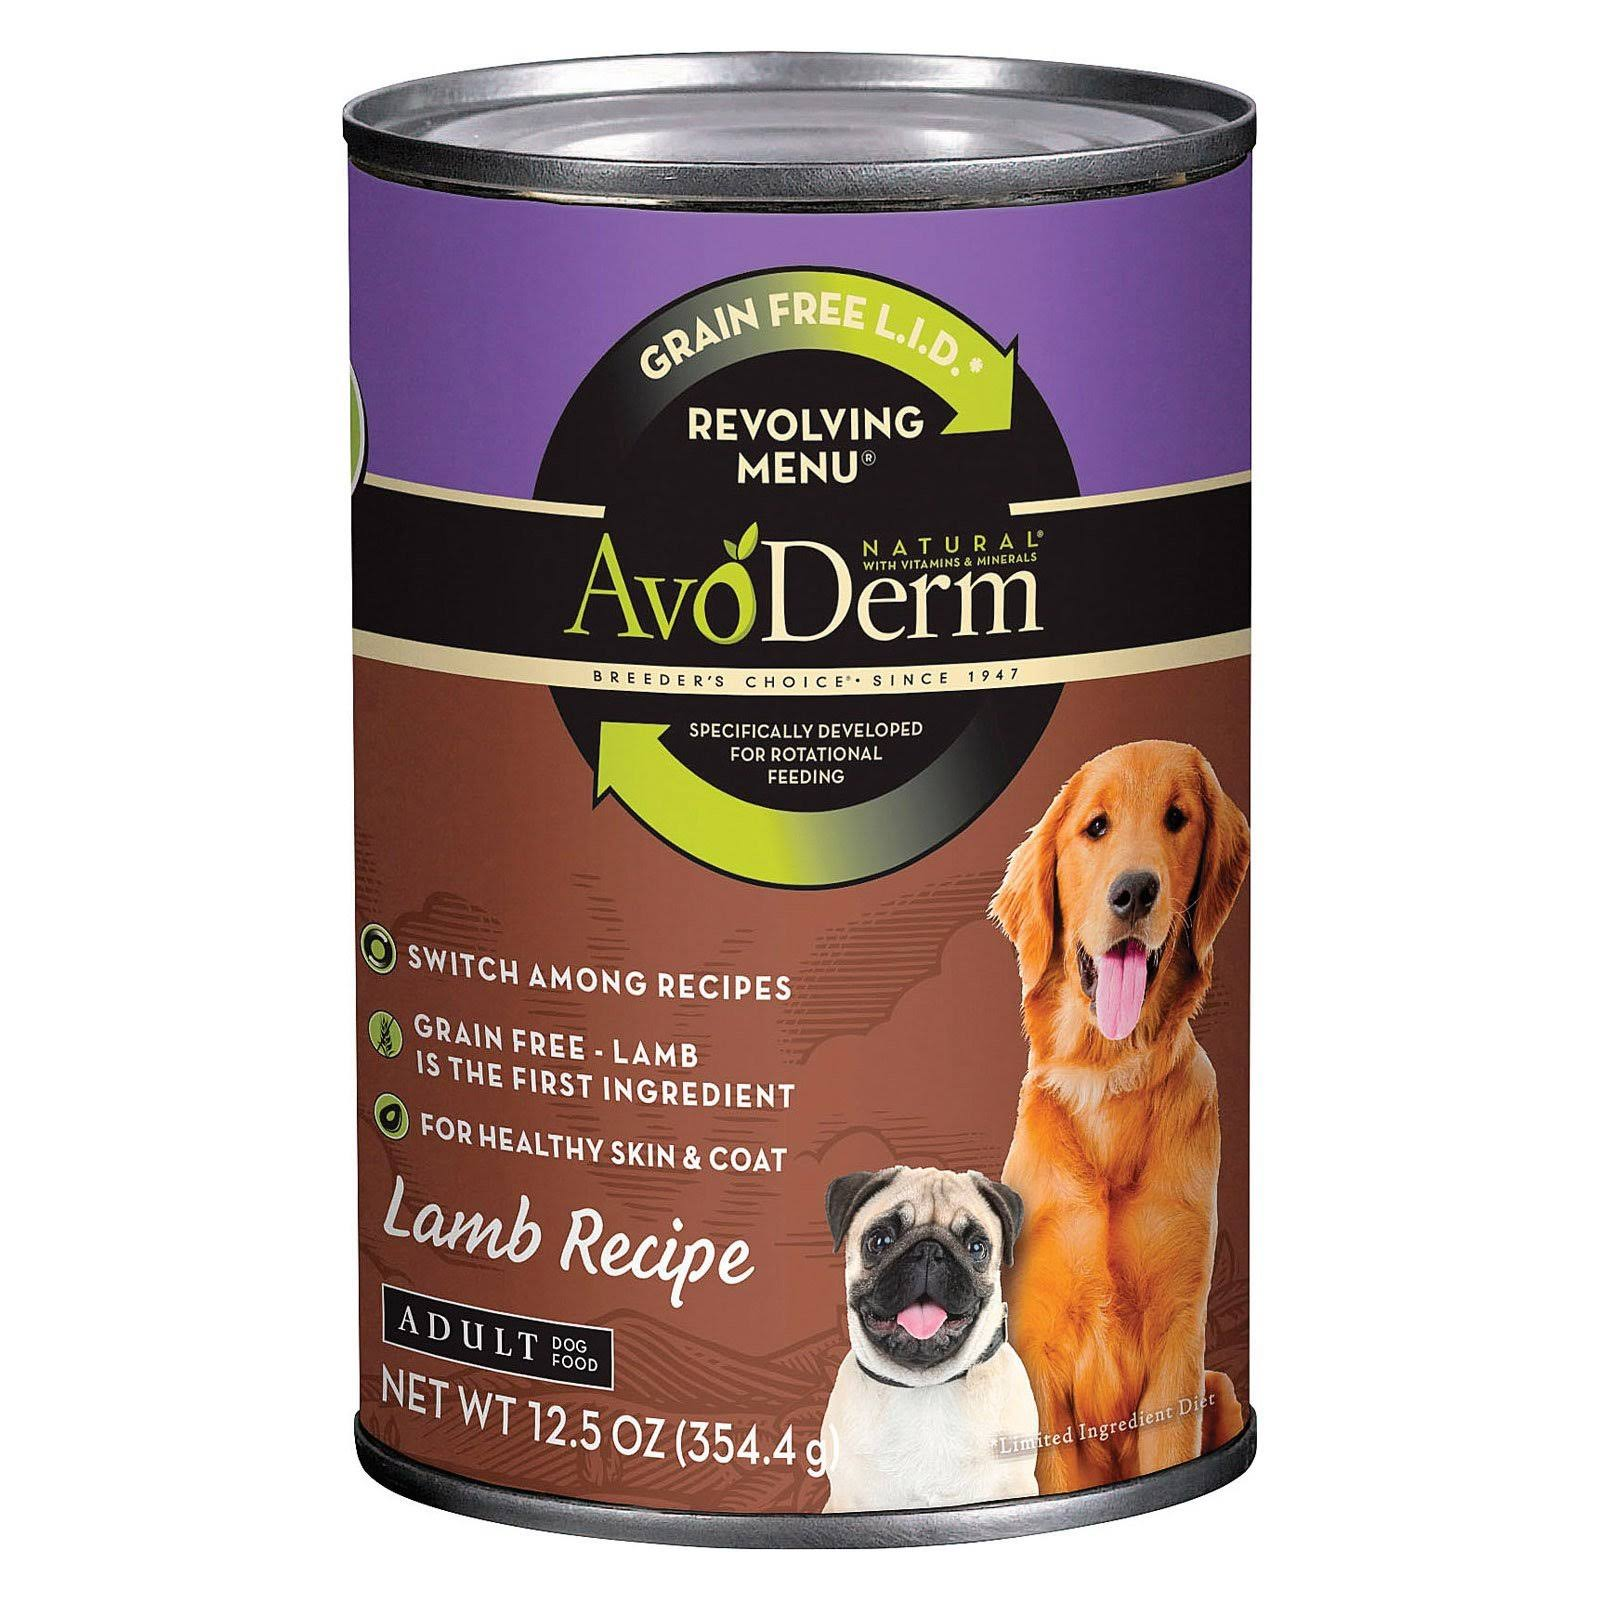 AvoDerm Breeder's Choice Canned Adult Dog Food - Lamb Recipe, 12.5oz